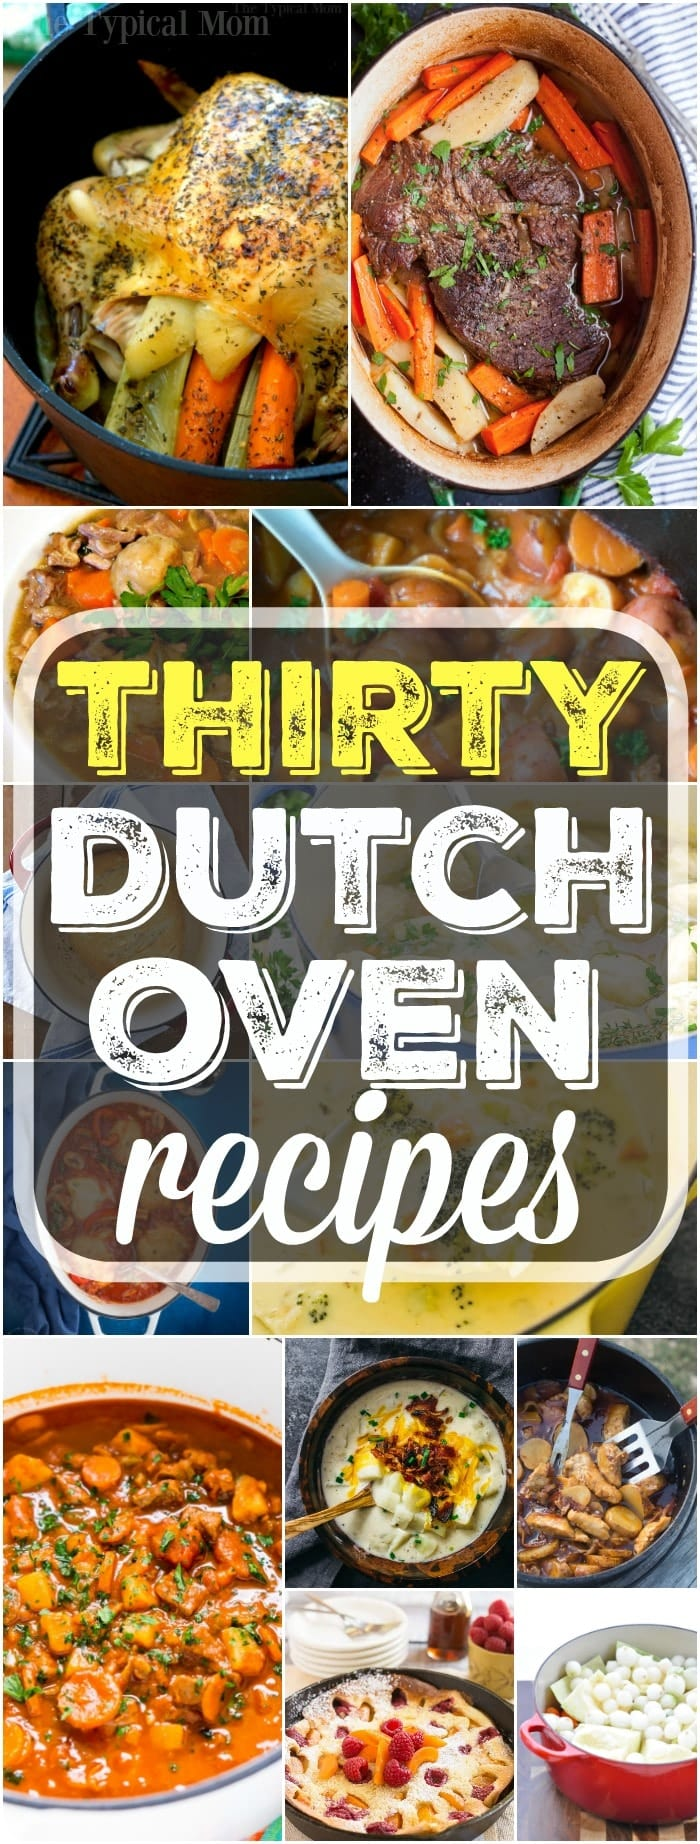 Here are 30 easy dutch oven recipes you can use at home or when you're camping. From dinners to bread and dutch oven desserts too you will find a variety of simple and easy to put together meals here you can cook in your cast iron dutch oven. I love this thing! #dutchoven #recipes #dinners #beef #chicken #soup #stew #dessert #potatoes #castiron